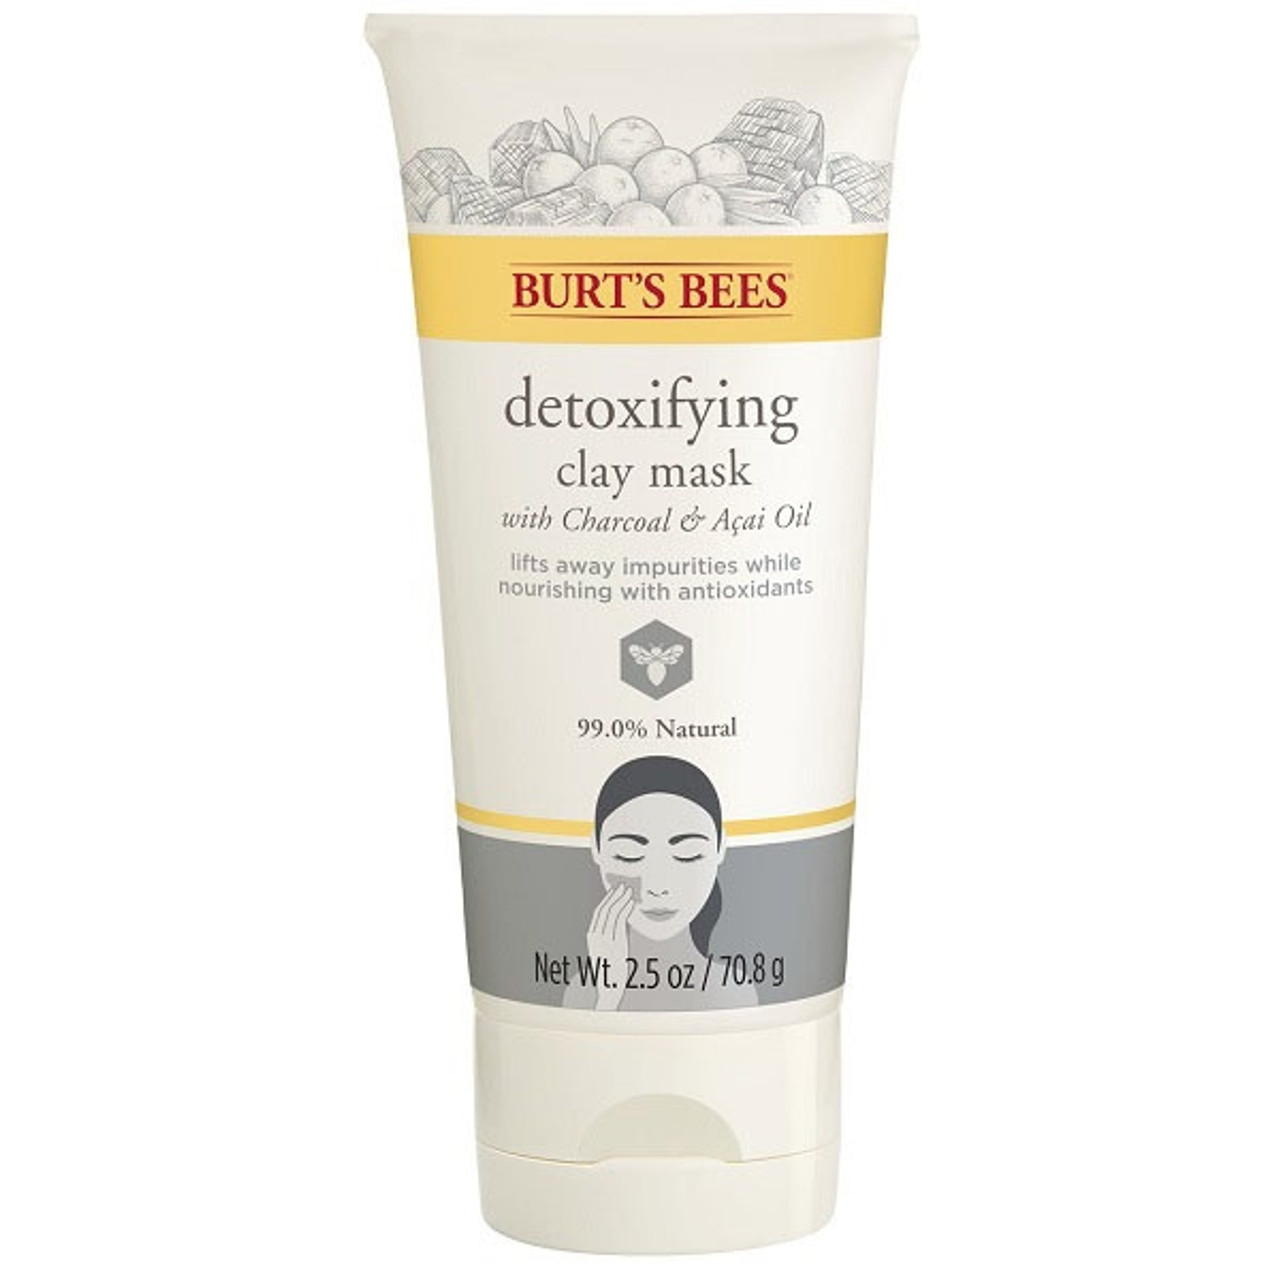 Burt's Bees Detoxifying Chacoral Face Mask